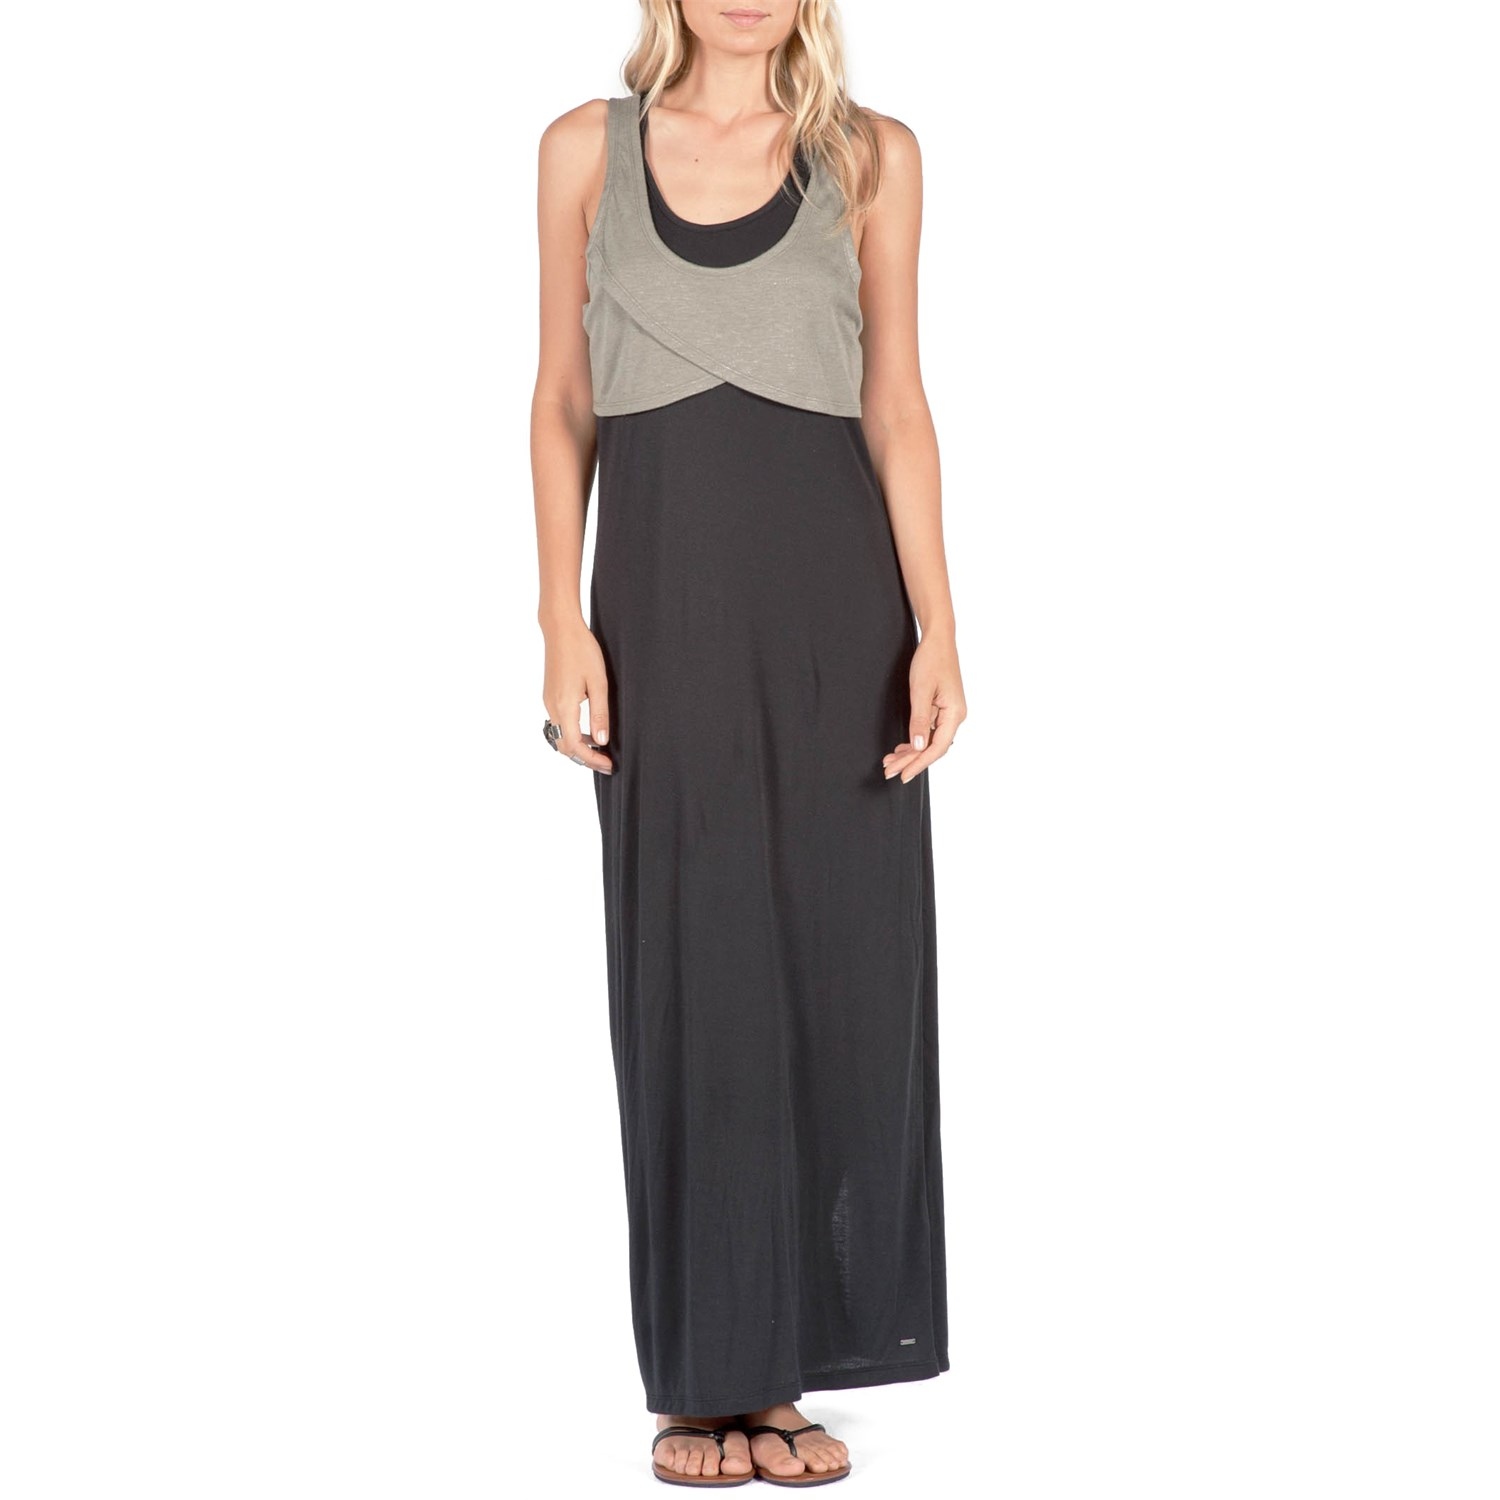 Shop a great selection of Women's Maxi Dresses at HauteLook. Find designer Women's Maxi Dresses up to 70% off and get free shipping on orders over $